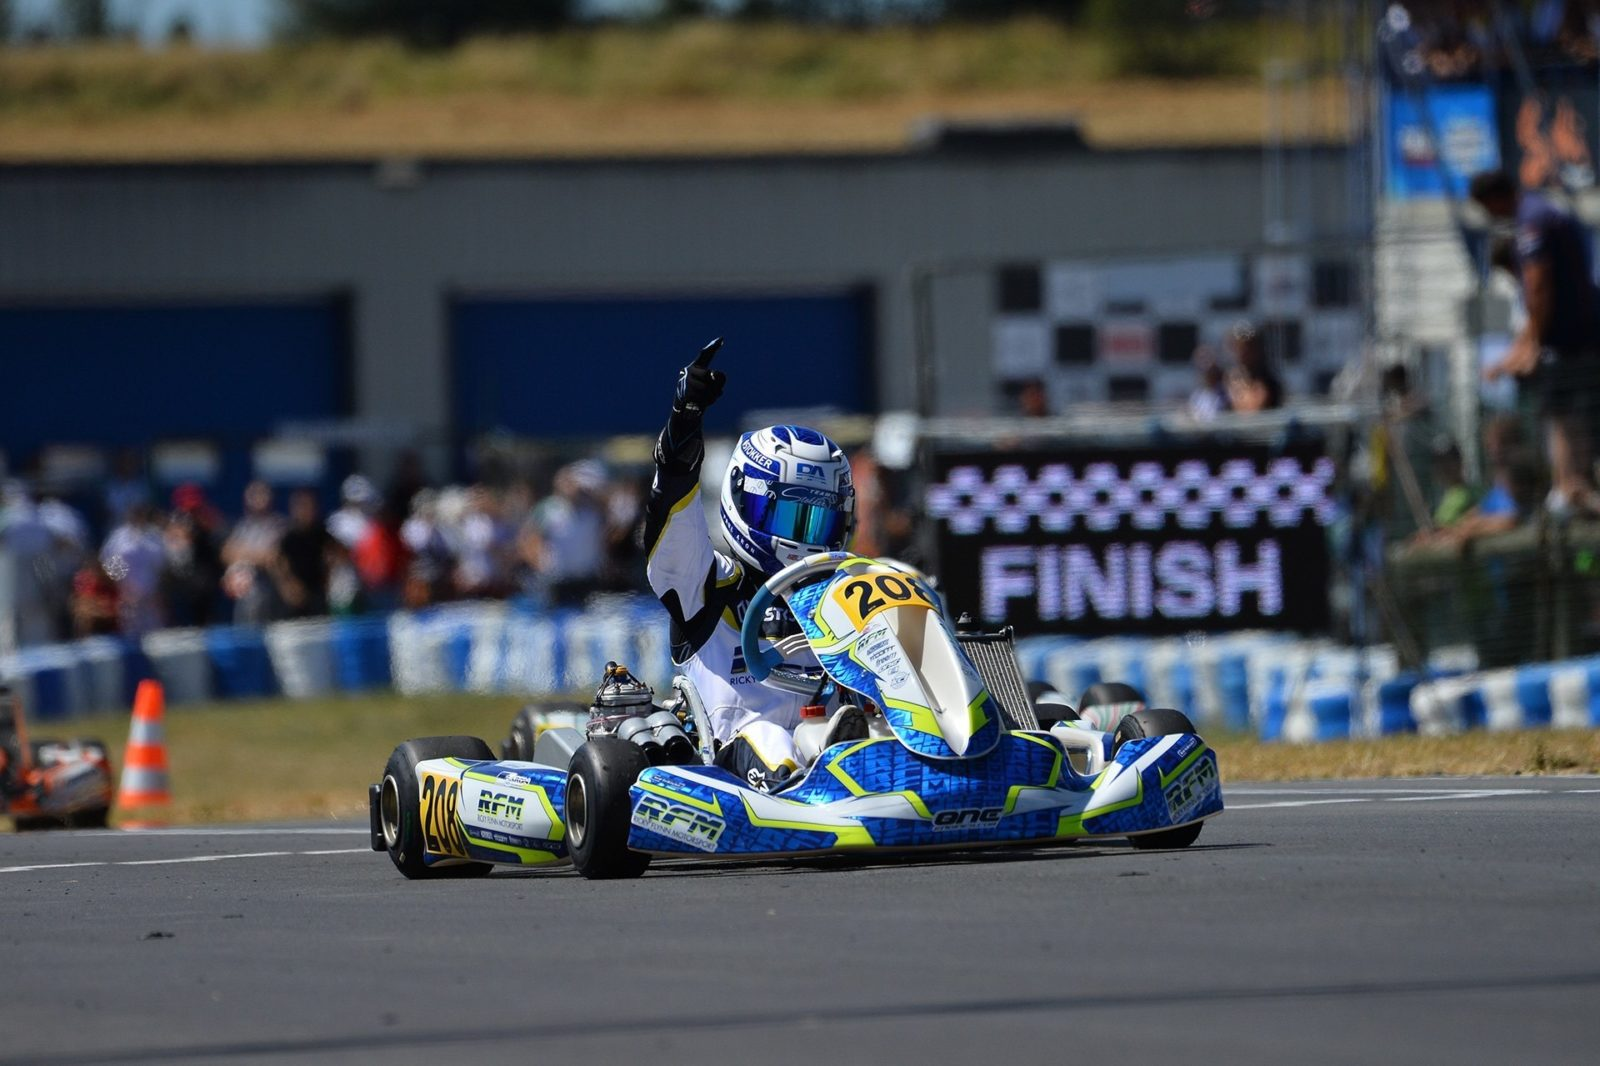 FA Kart is European Champion in OKJ class - Kart360